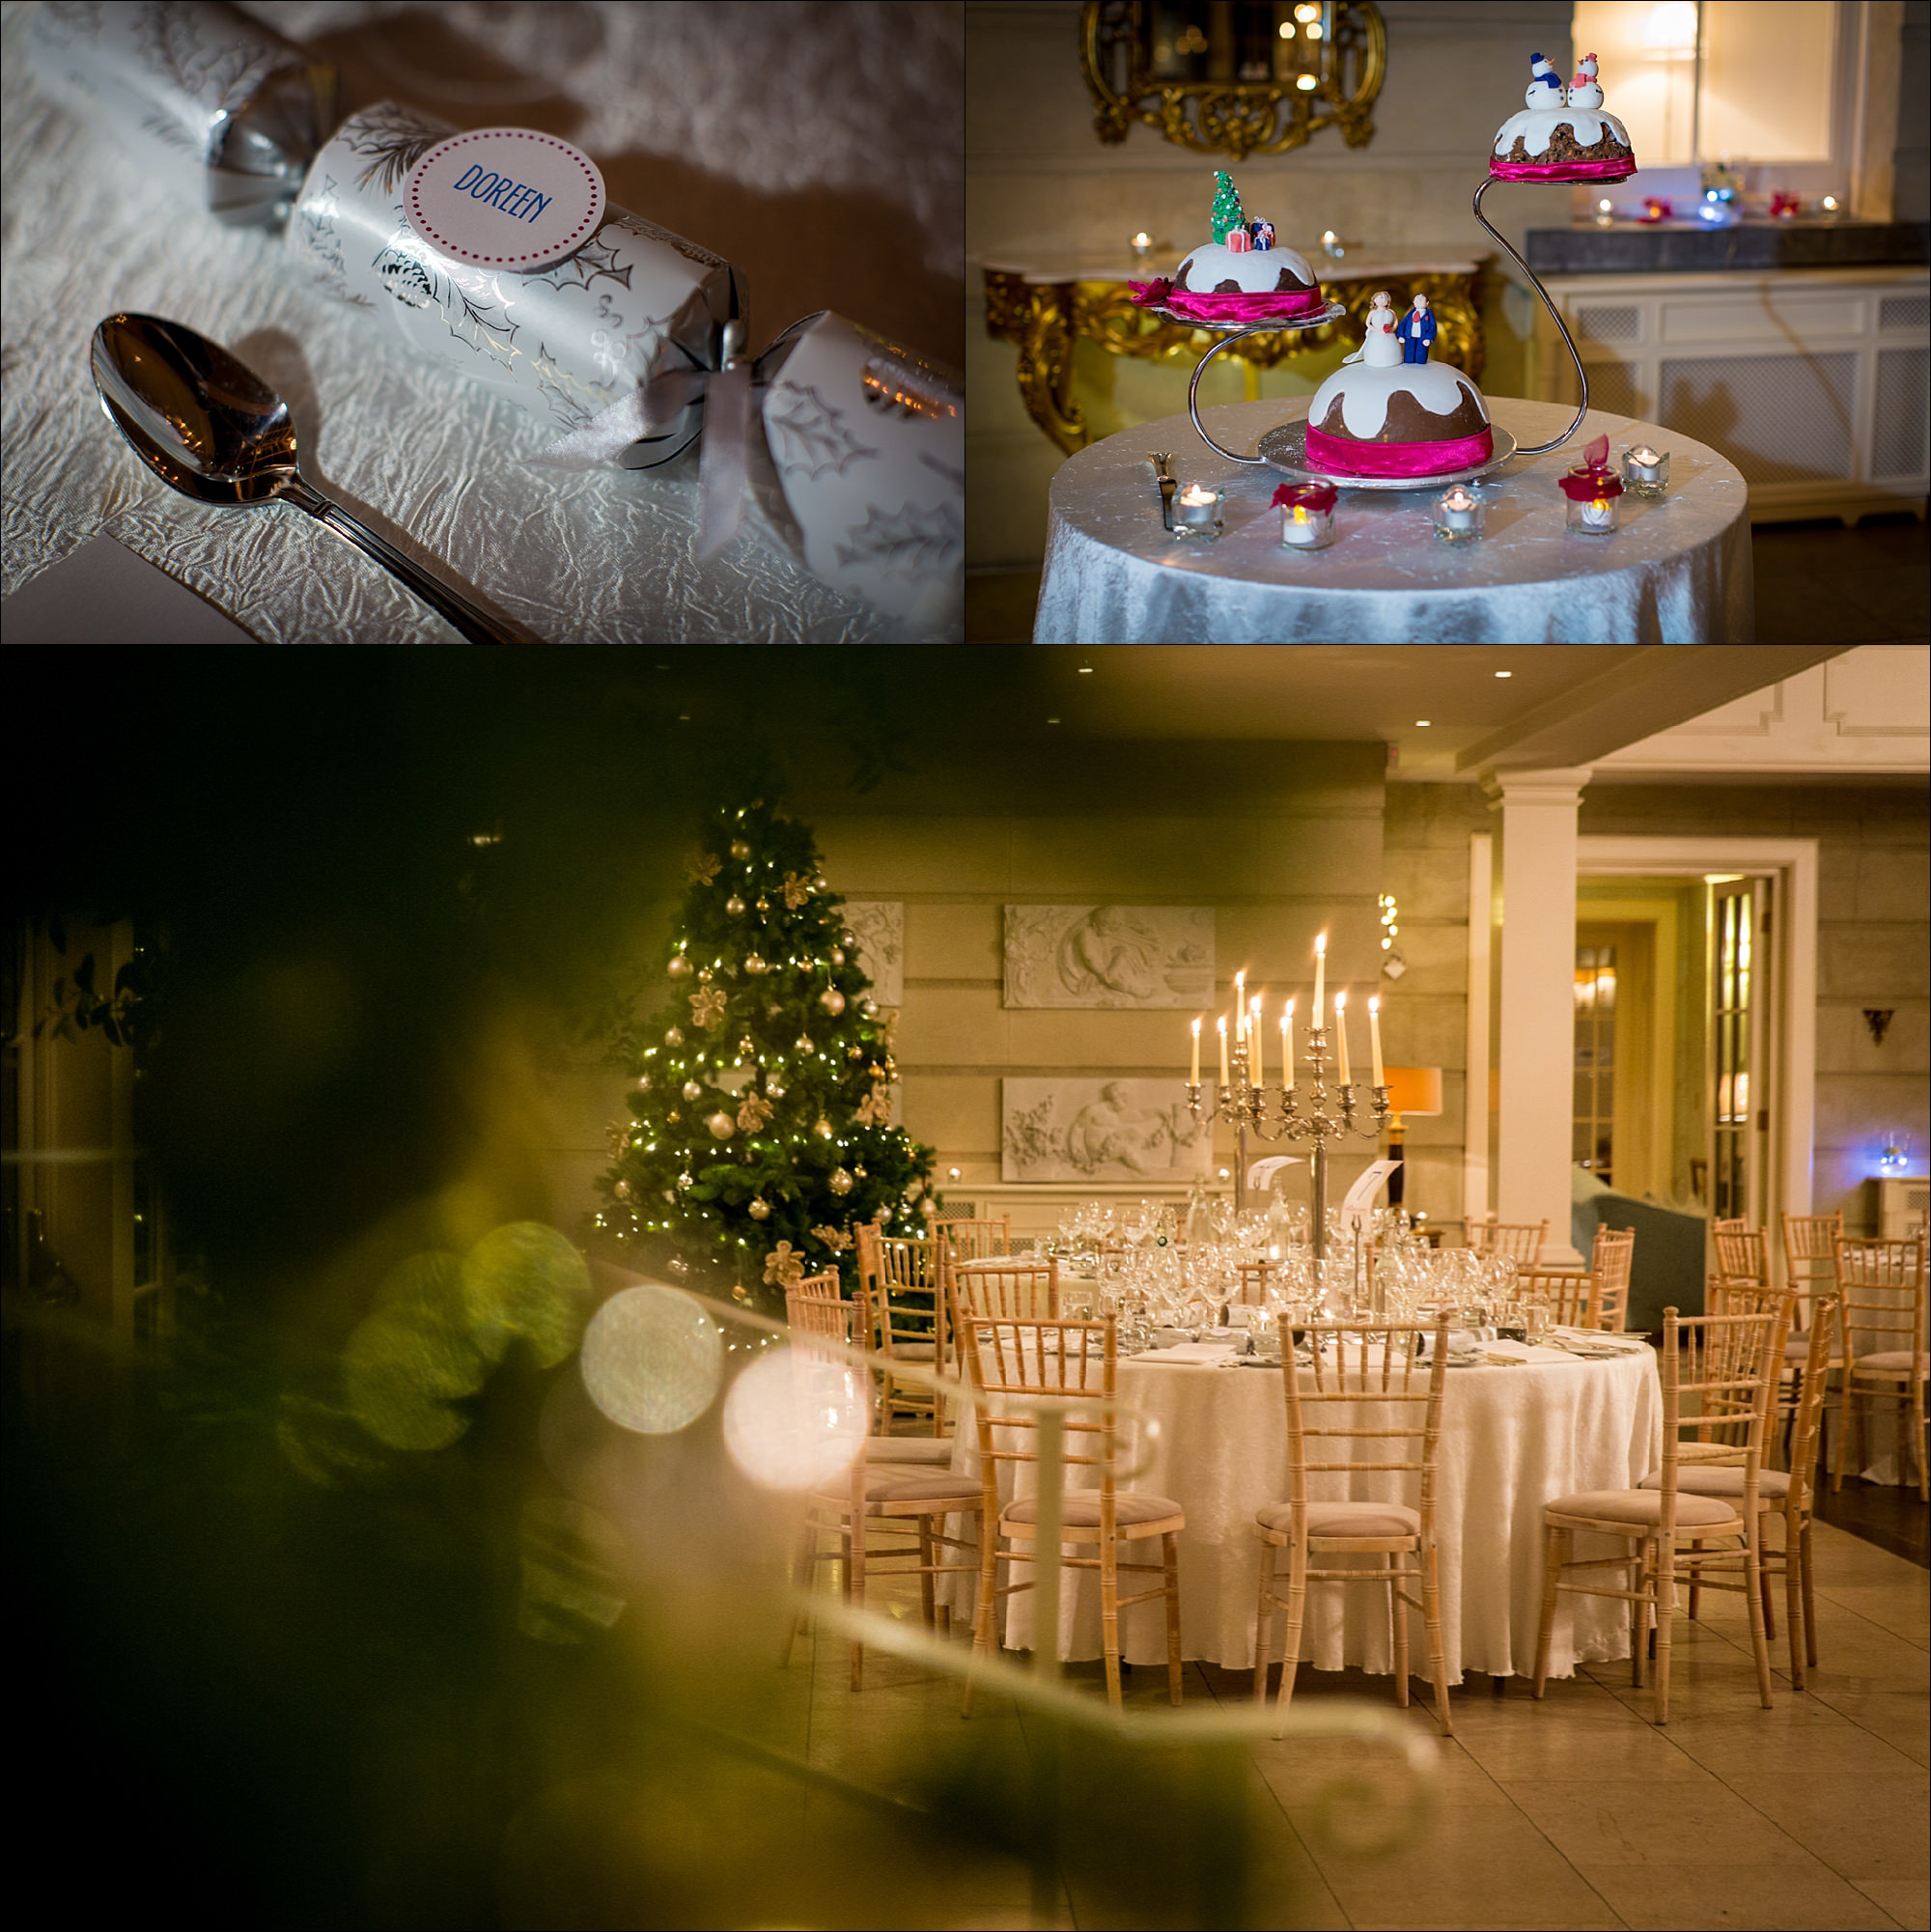 dublin wedding photographer david duignan photography tankardstown weddings slane rathfeigh church ireland 0047